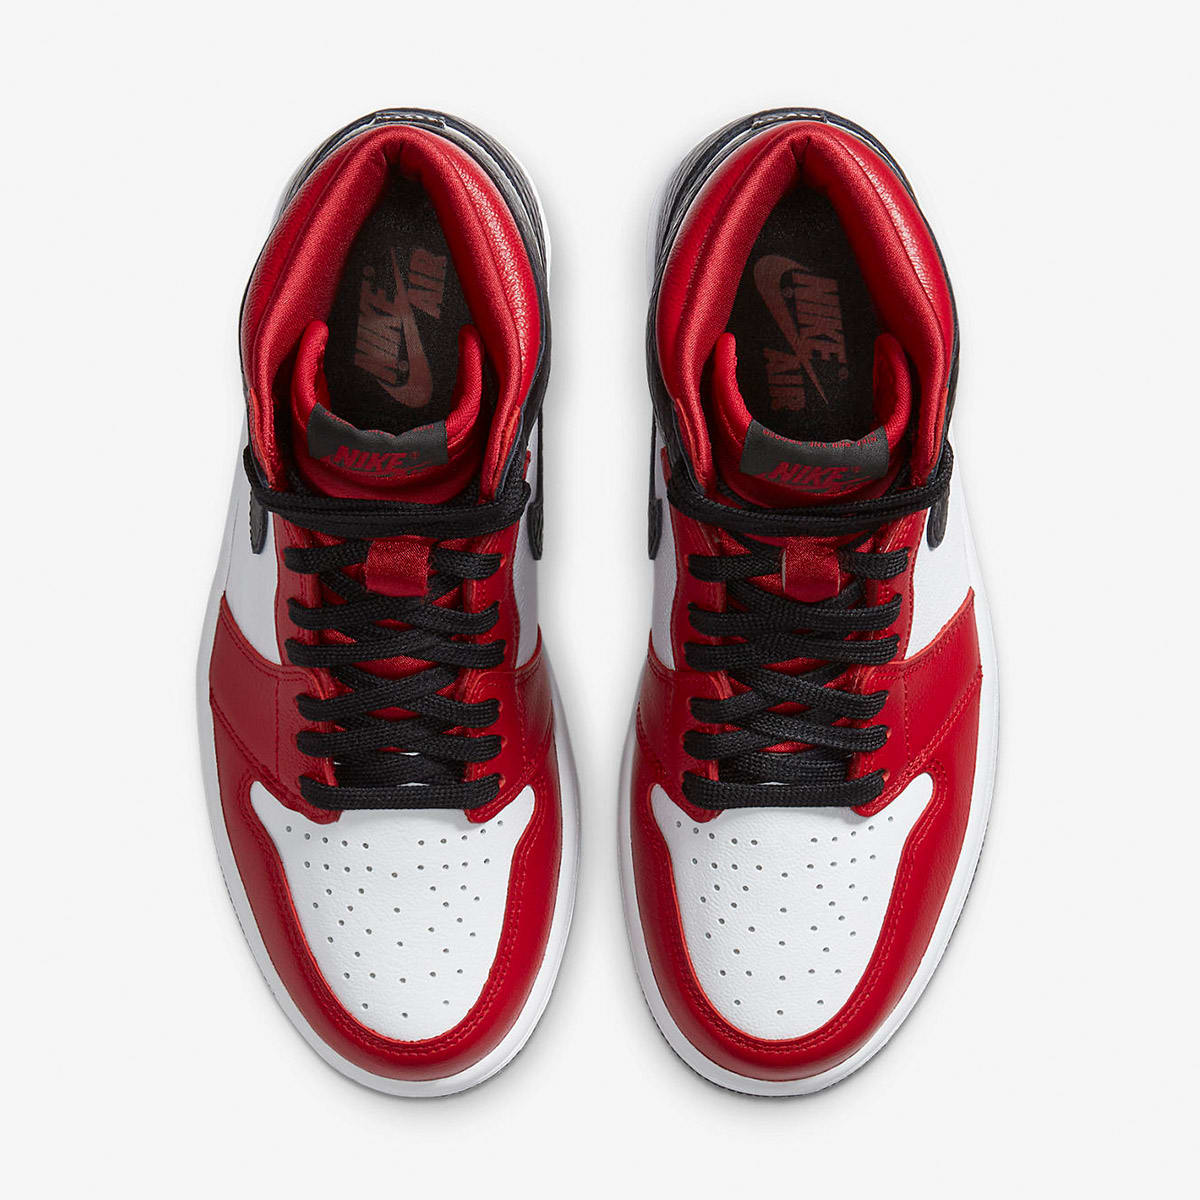 Air Jordan 1 High OG W - CD0461-601